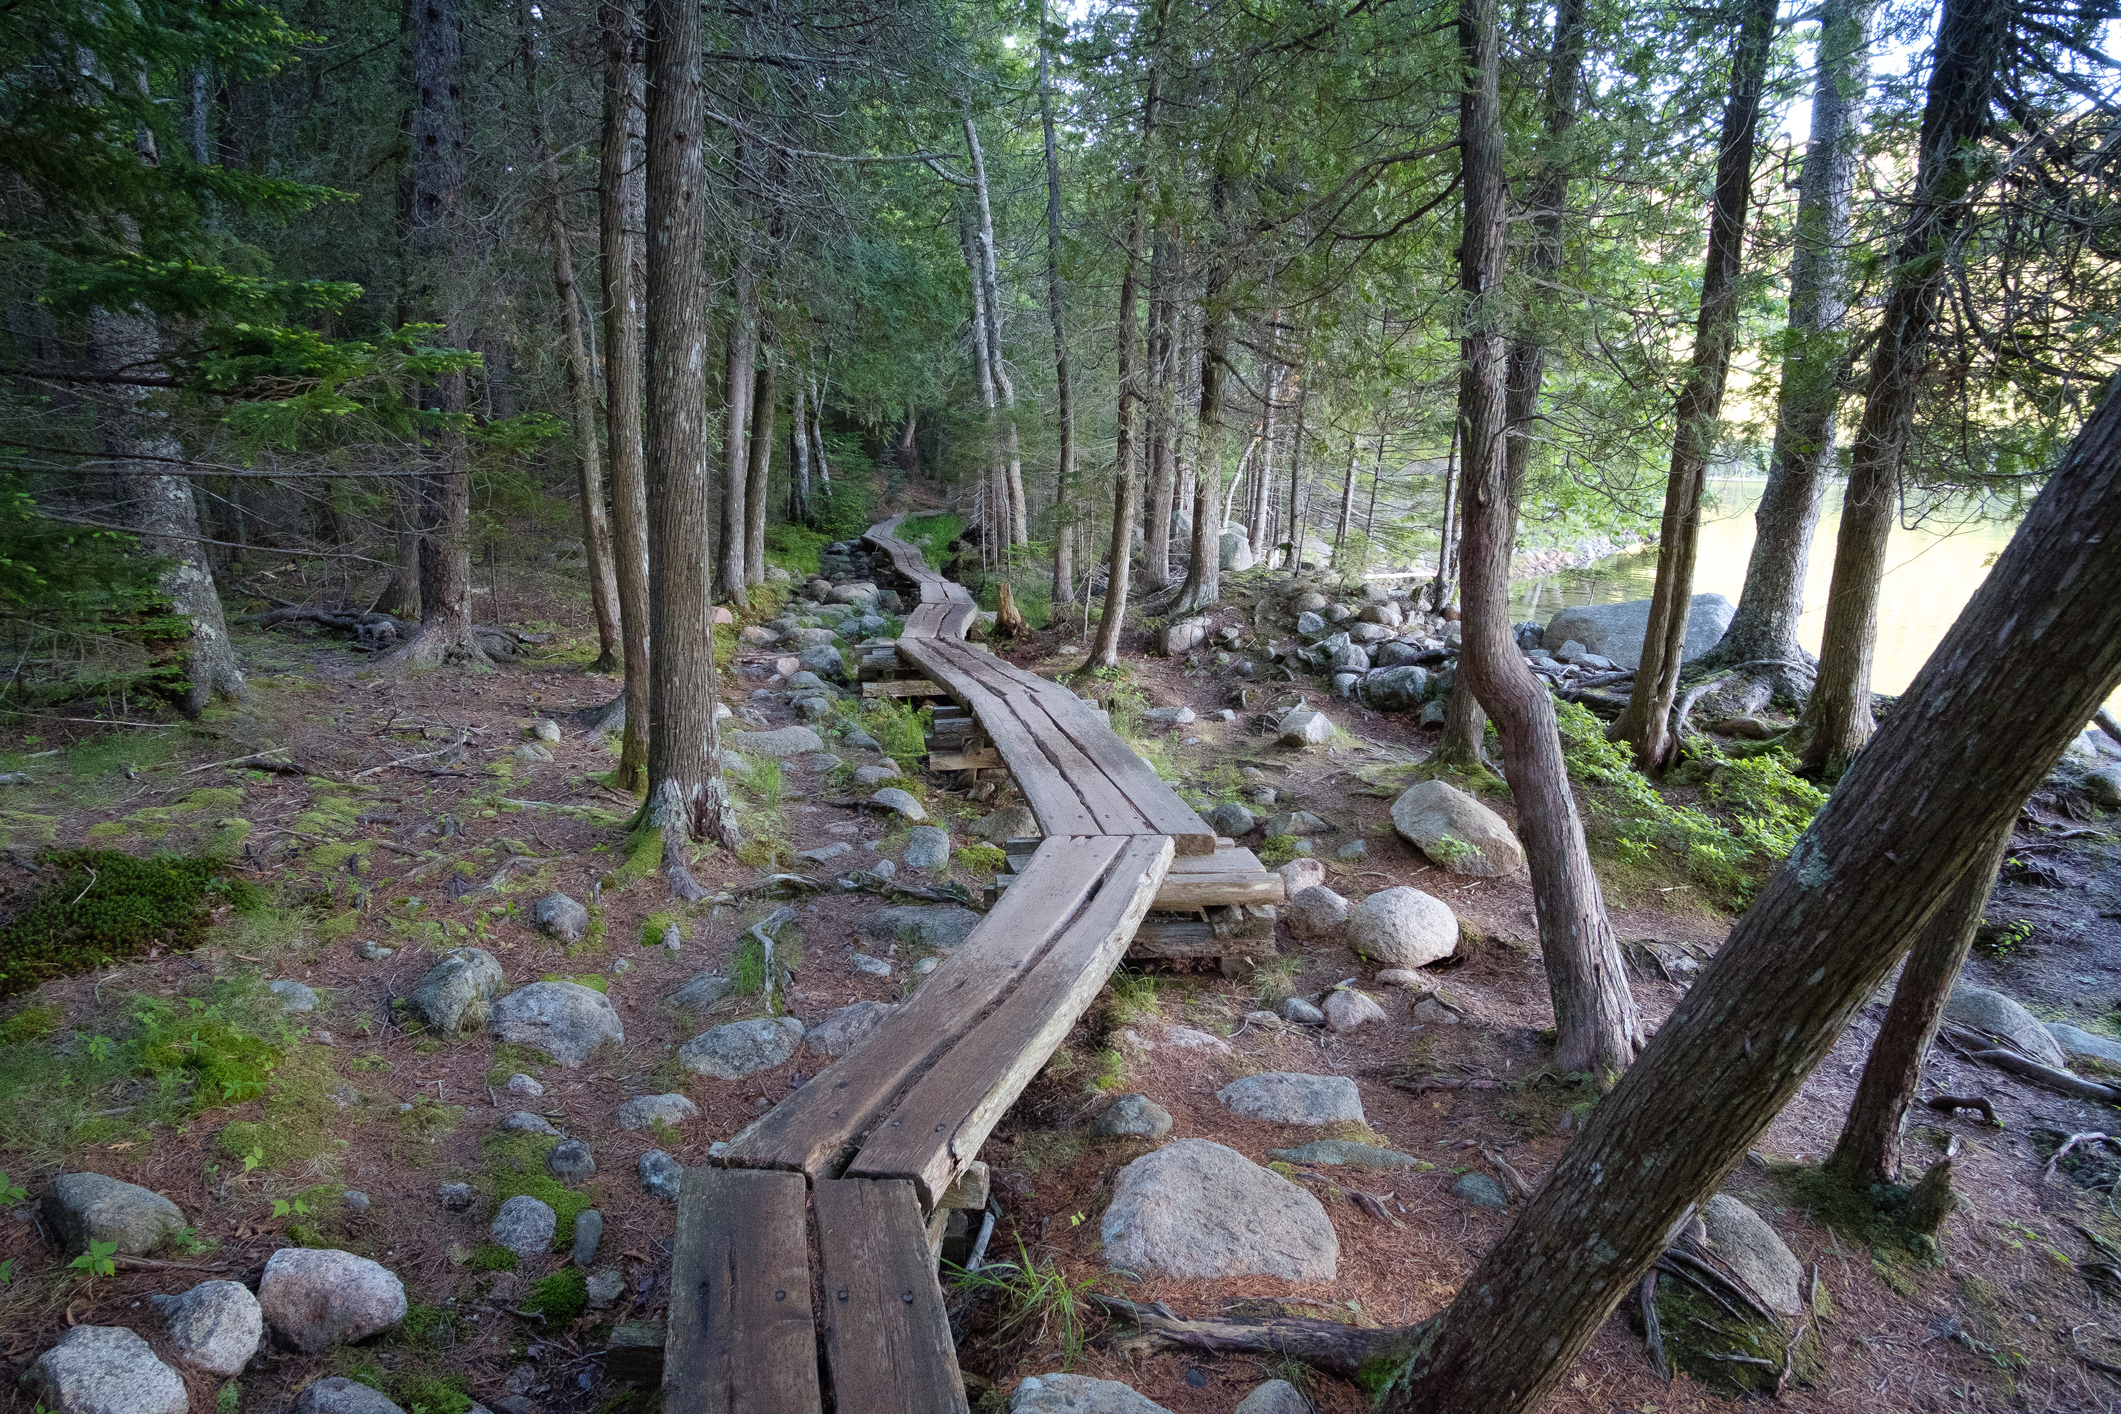 Raise wooden trail snakes through forest.